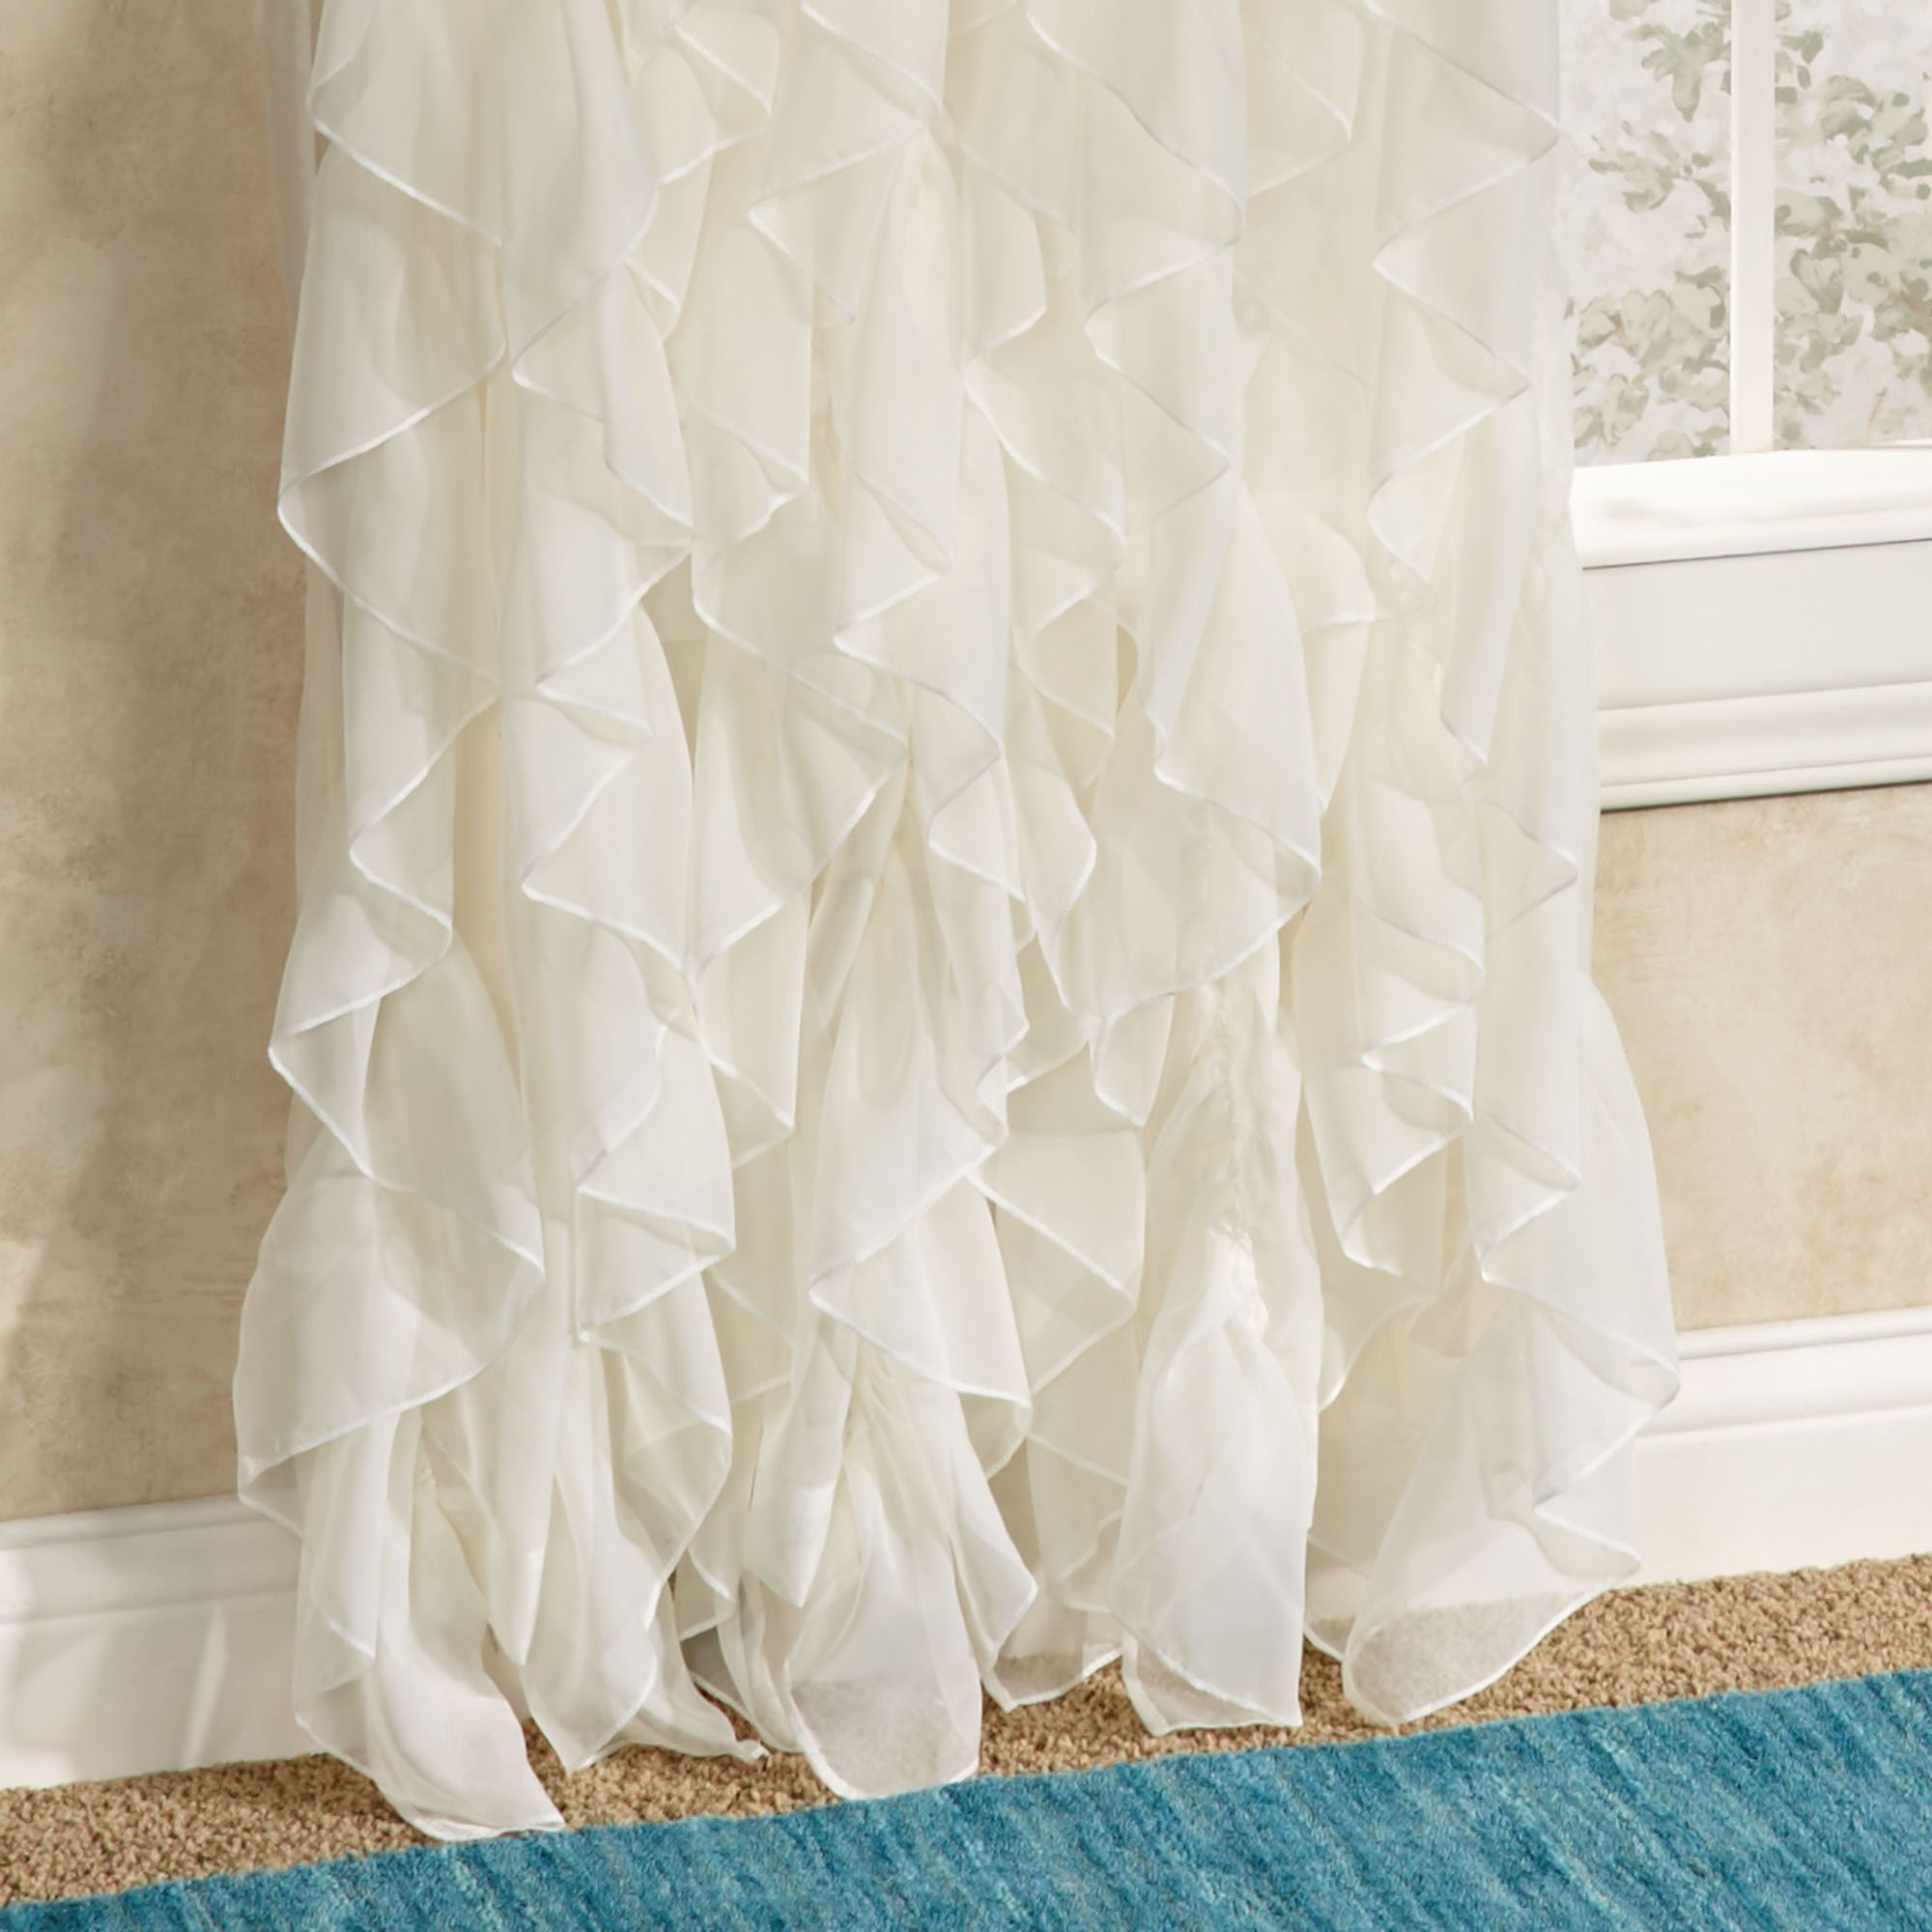 Cascade Sheer Voile Ruffled Window Treatment Ruffled Curtains